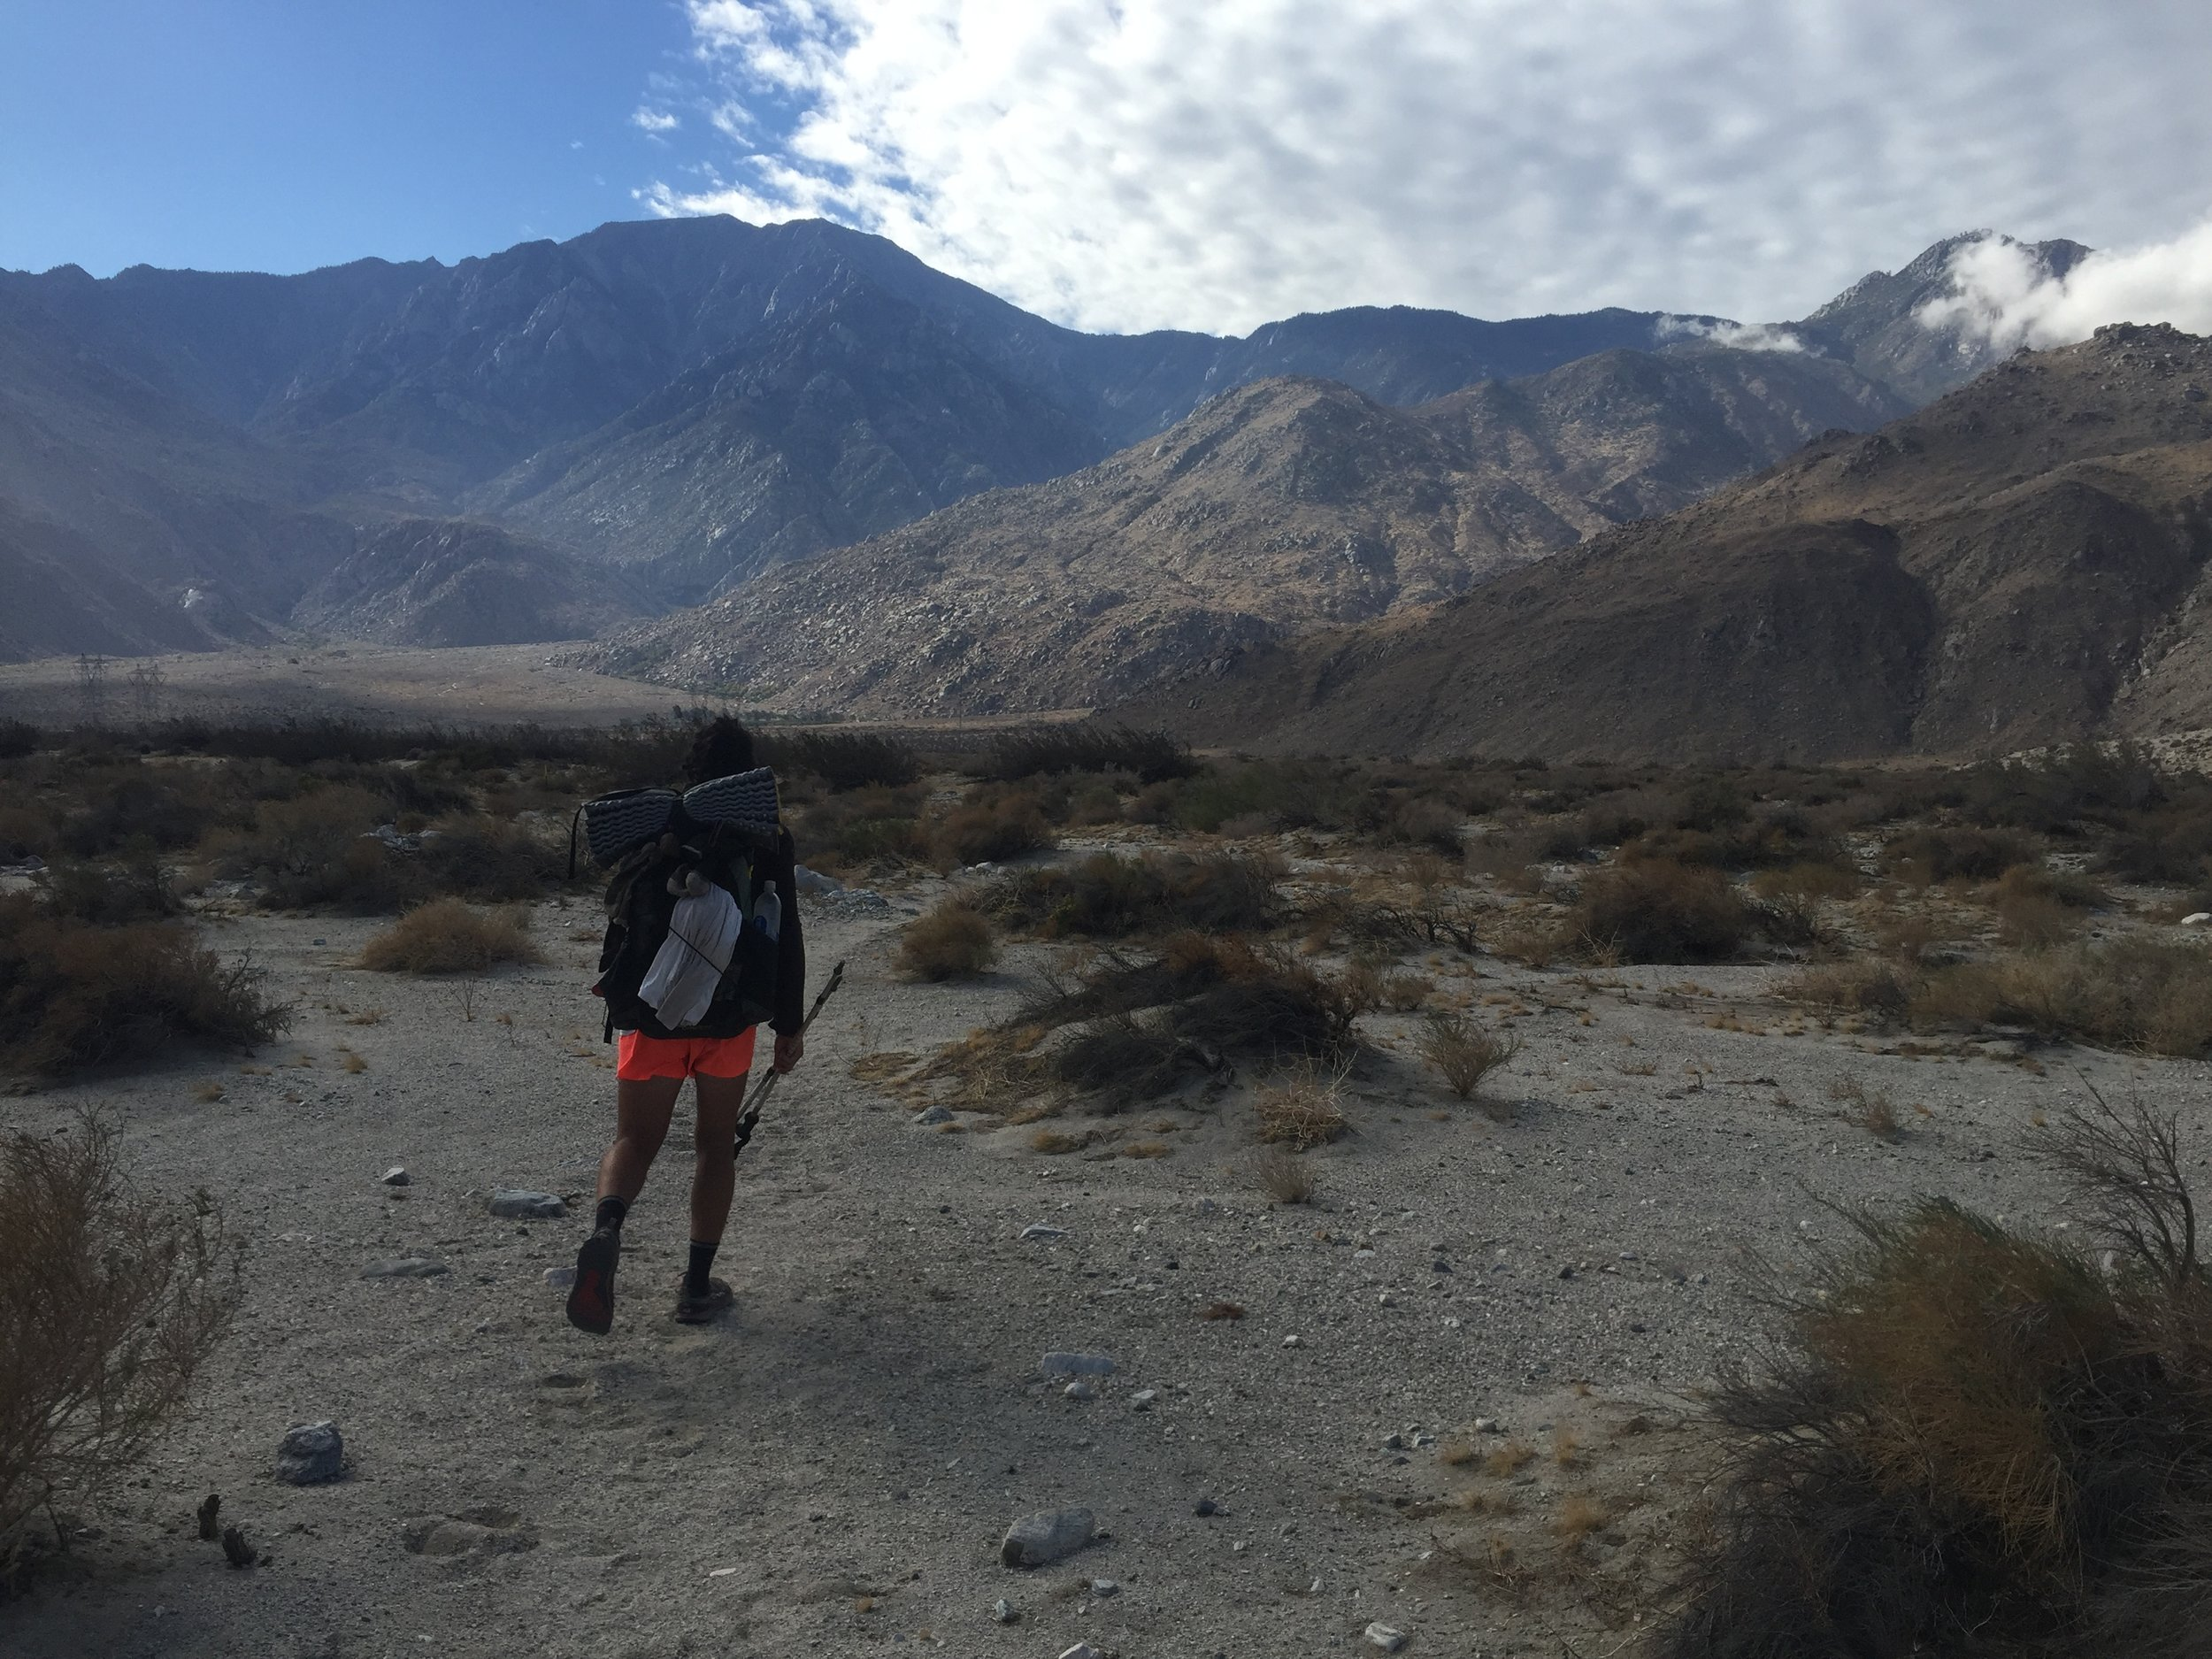 Late October in the San Gorgonio Wilderness - South of Big Bear Lake and near Whitewater Preserve